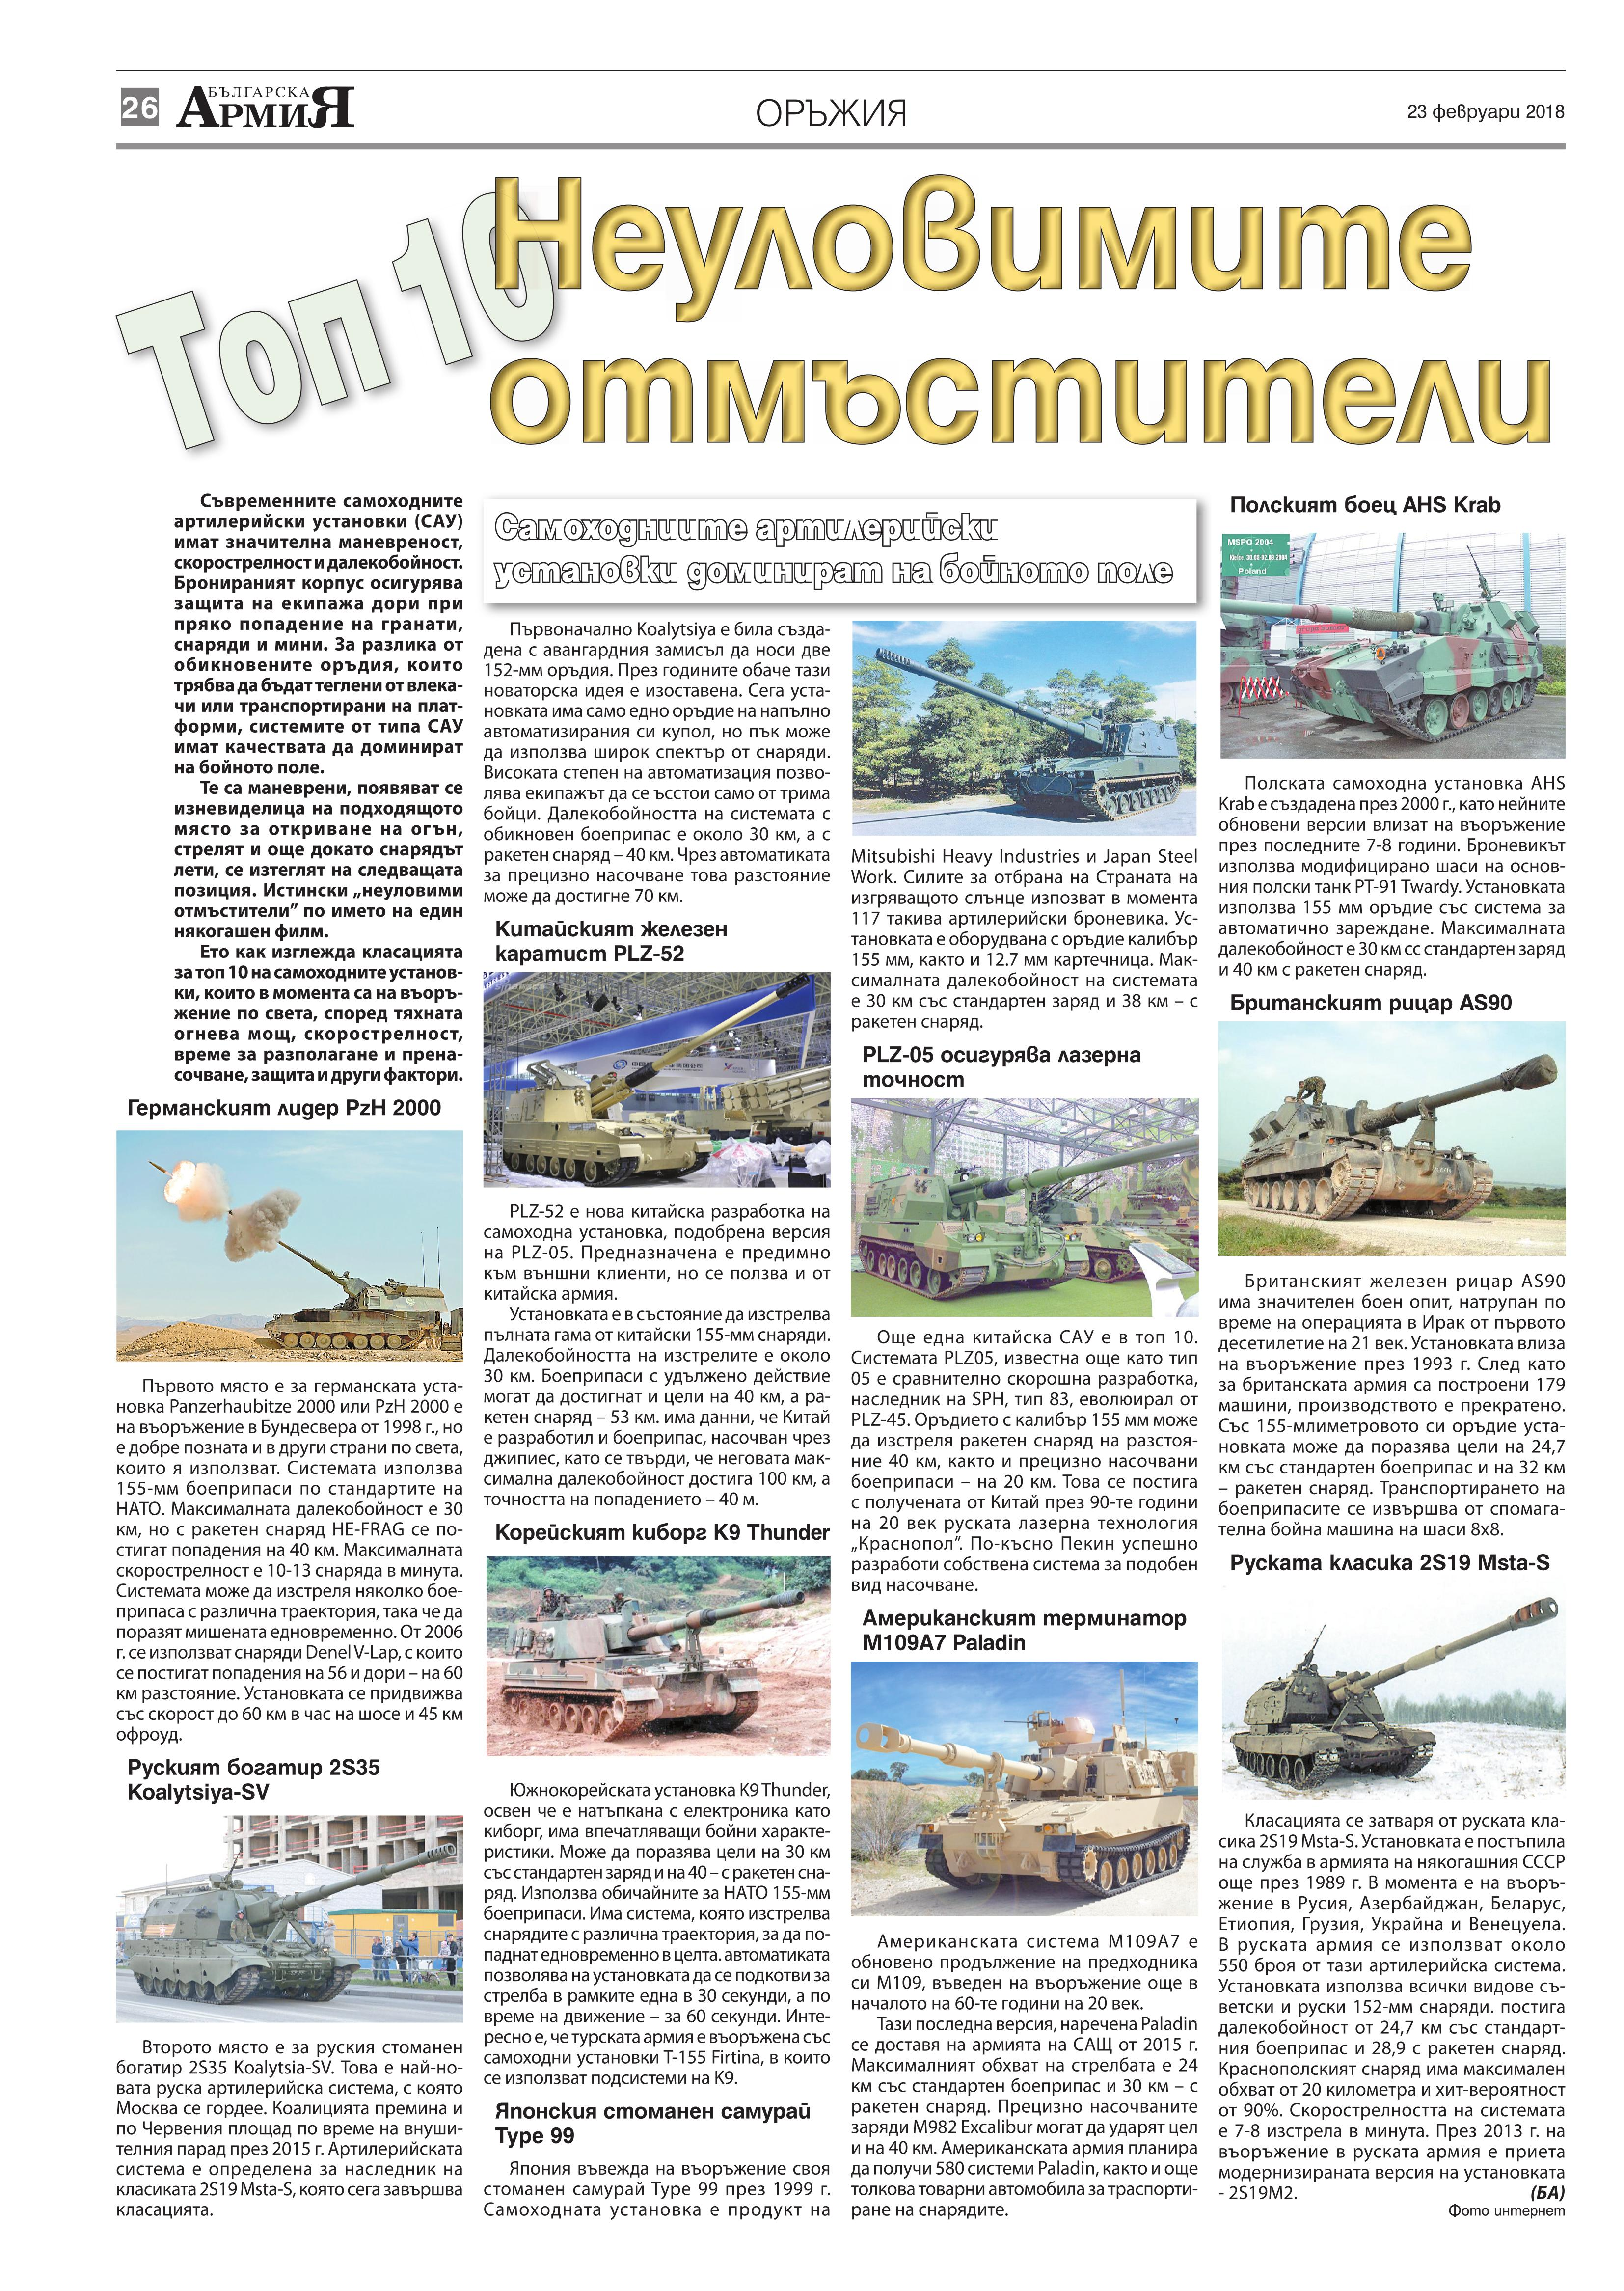 http://armymedia.bg/wp-content/uploads/2015/06/26.page1_-35.jpg